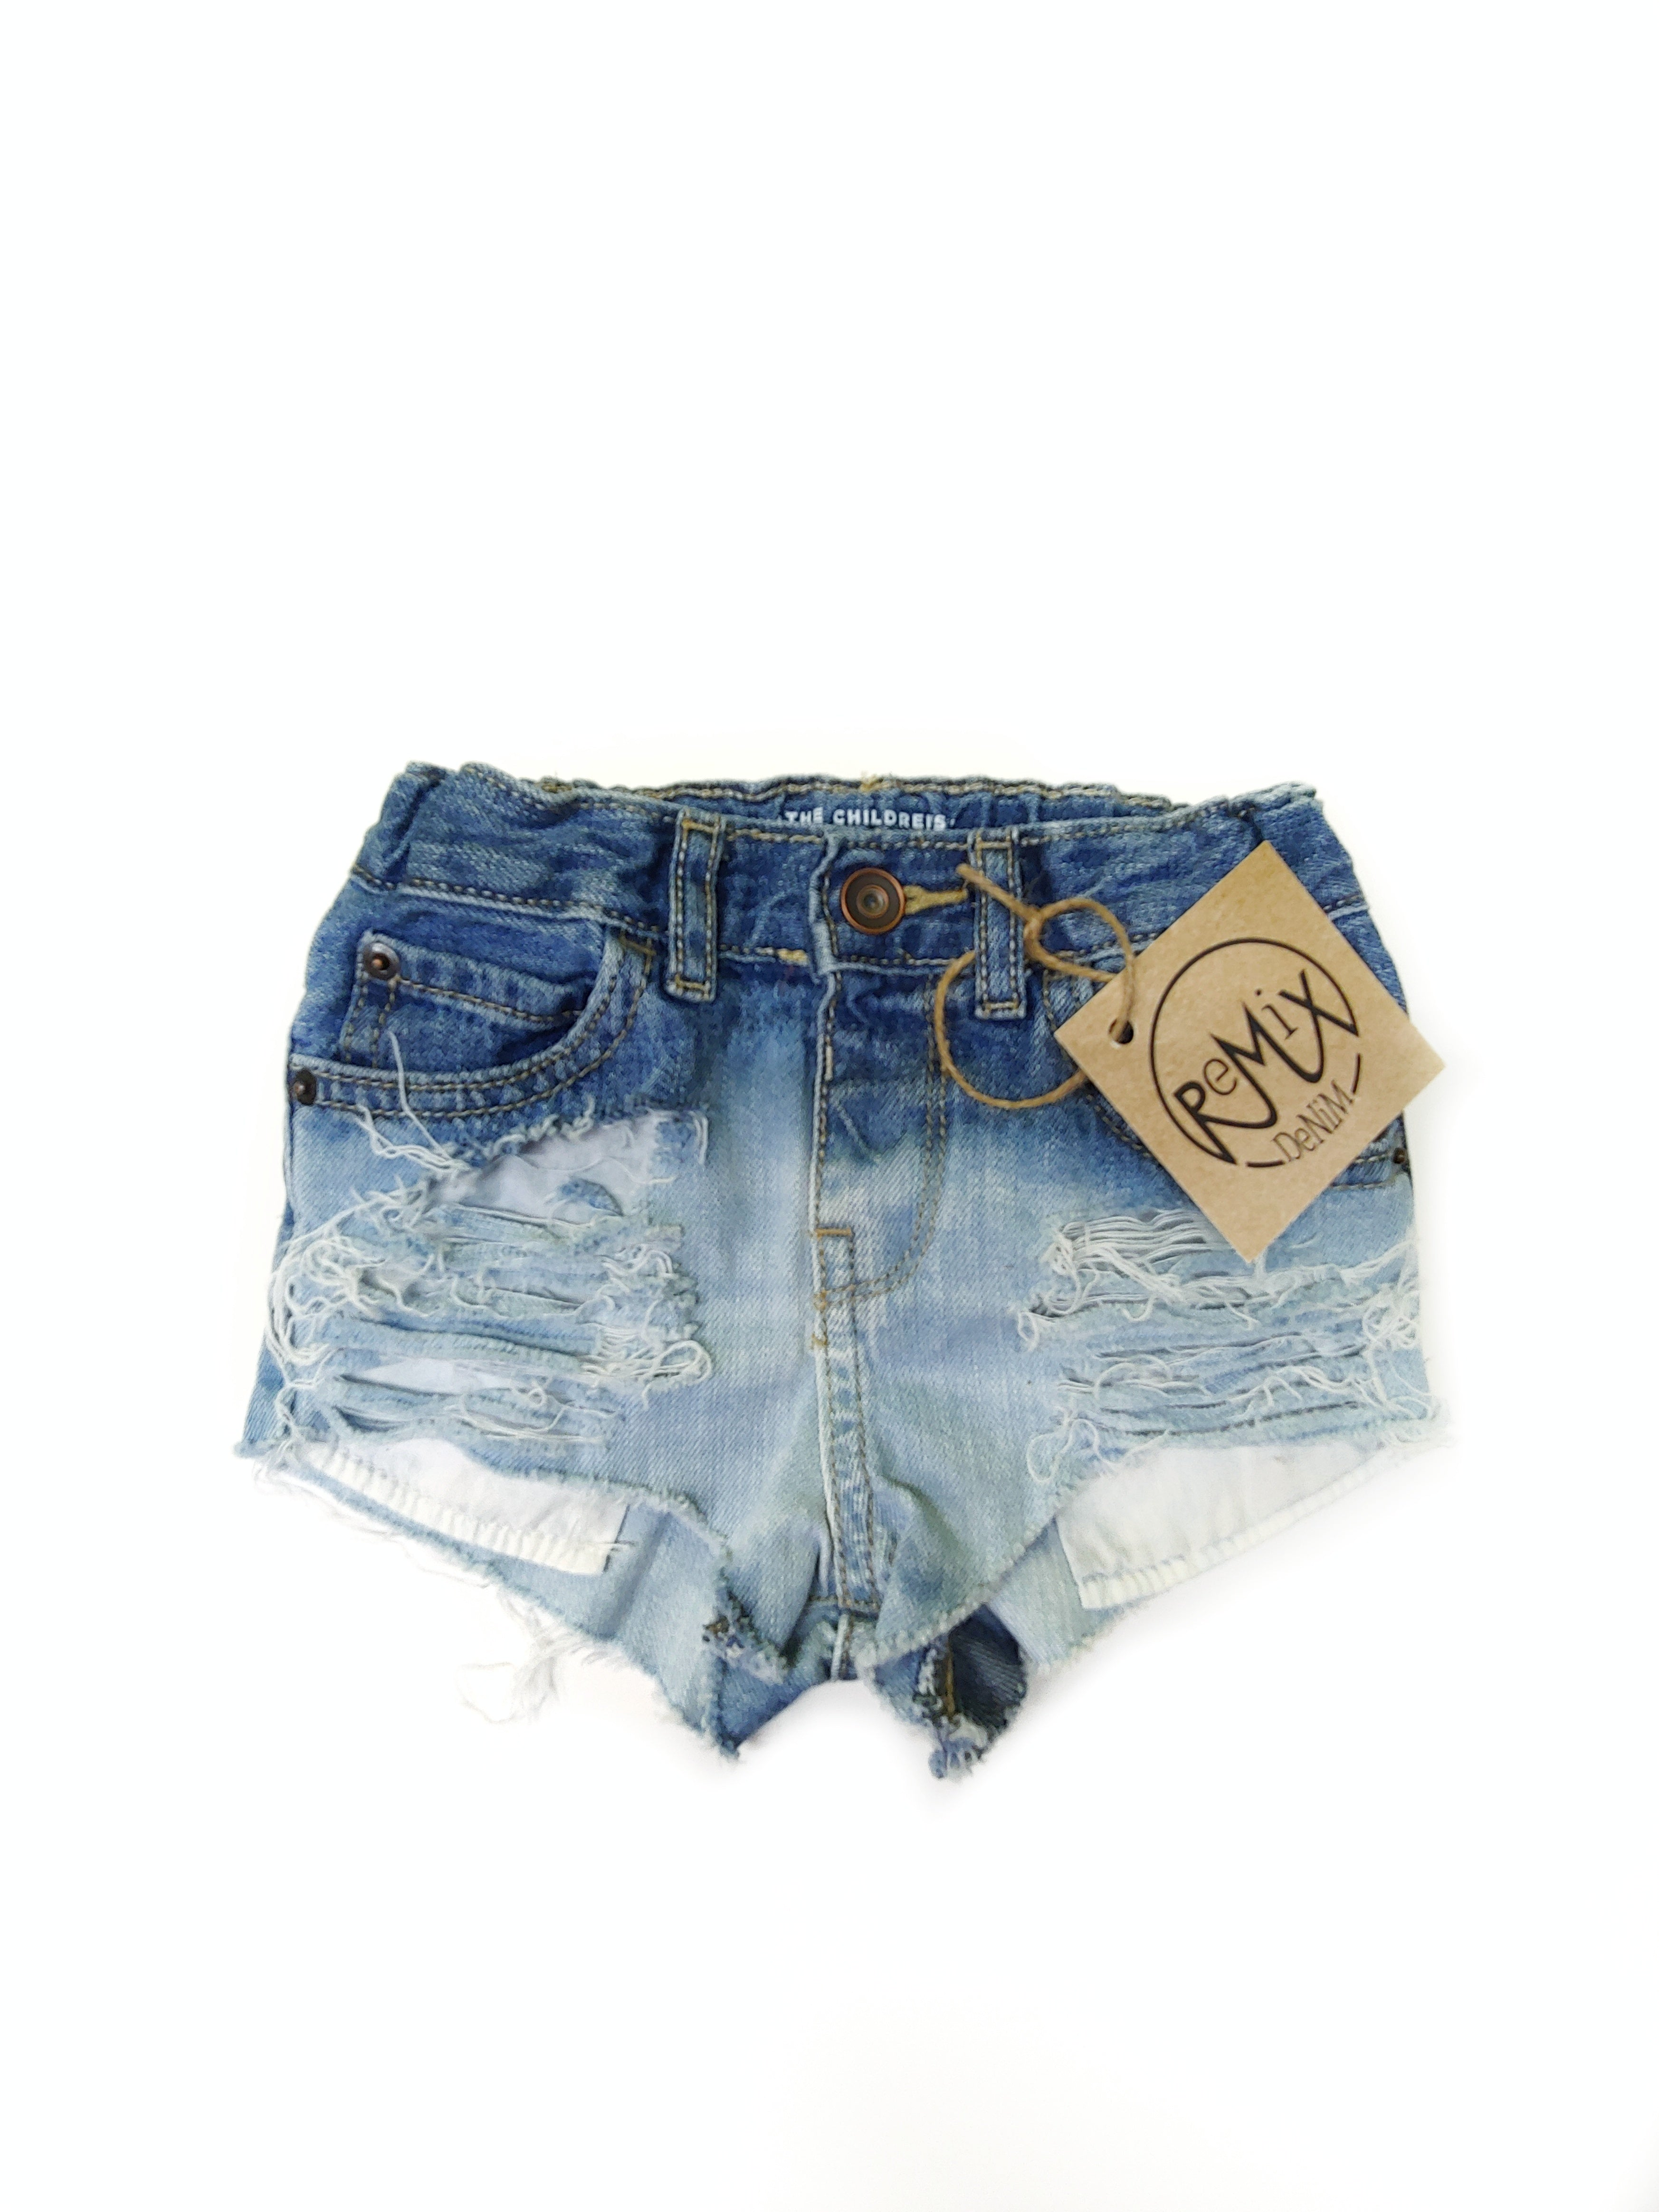 Medium Acid Dipped, Heavy Distressed Hilo Shorties